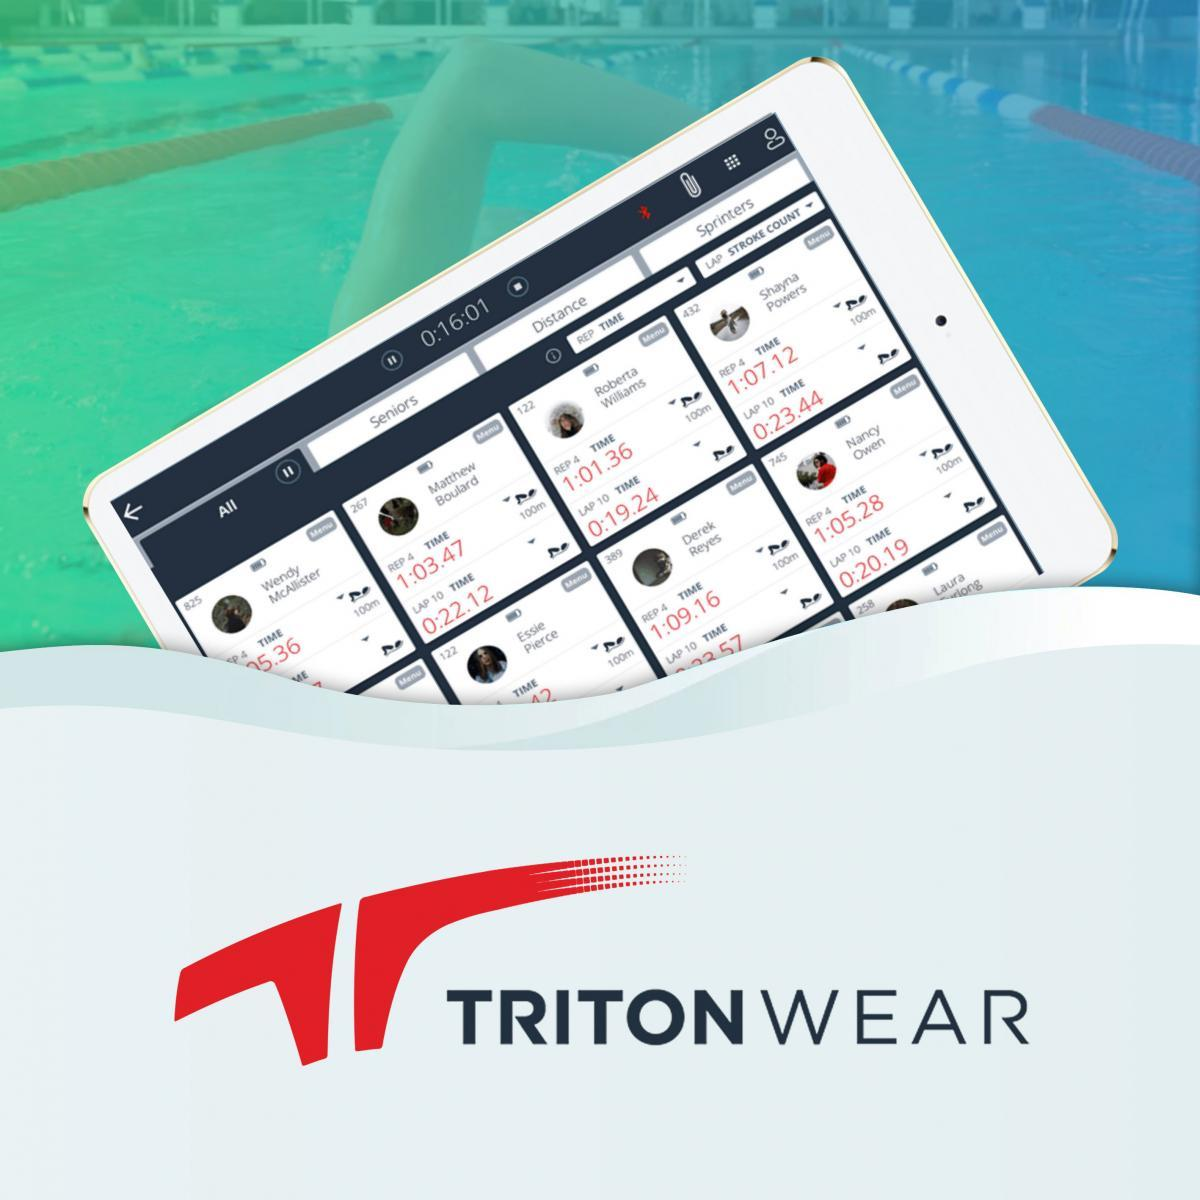 TritonWear – Wearable solution for professional swimmers